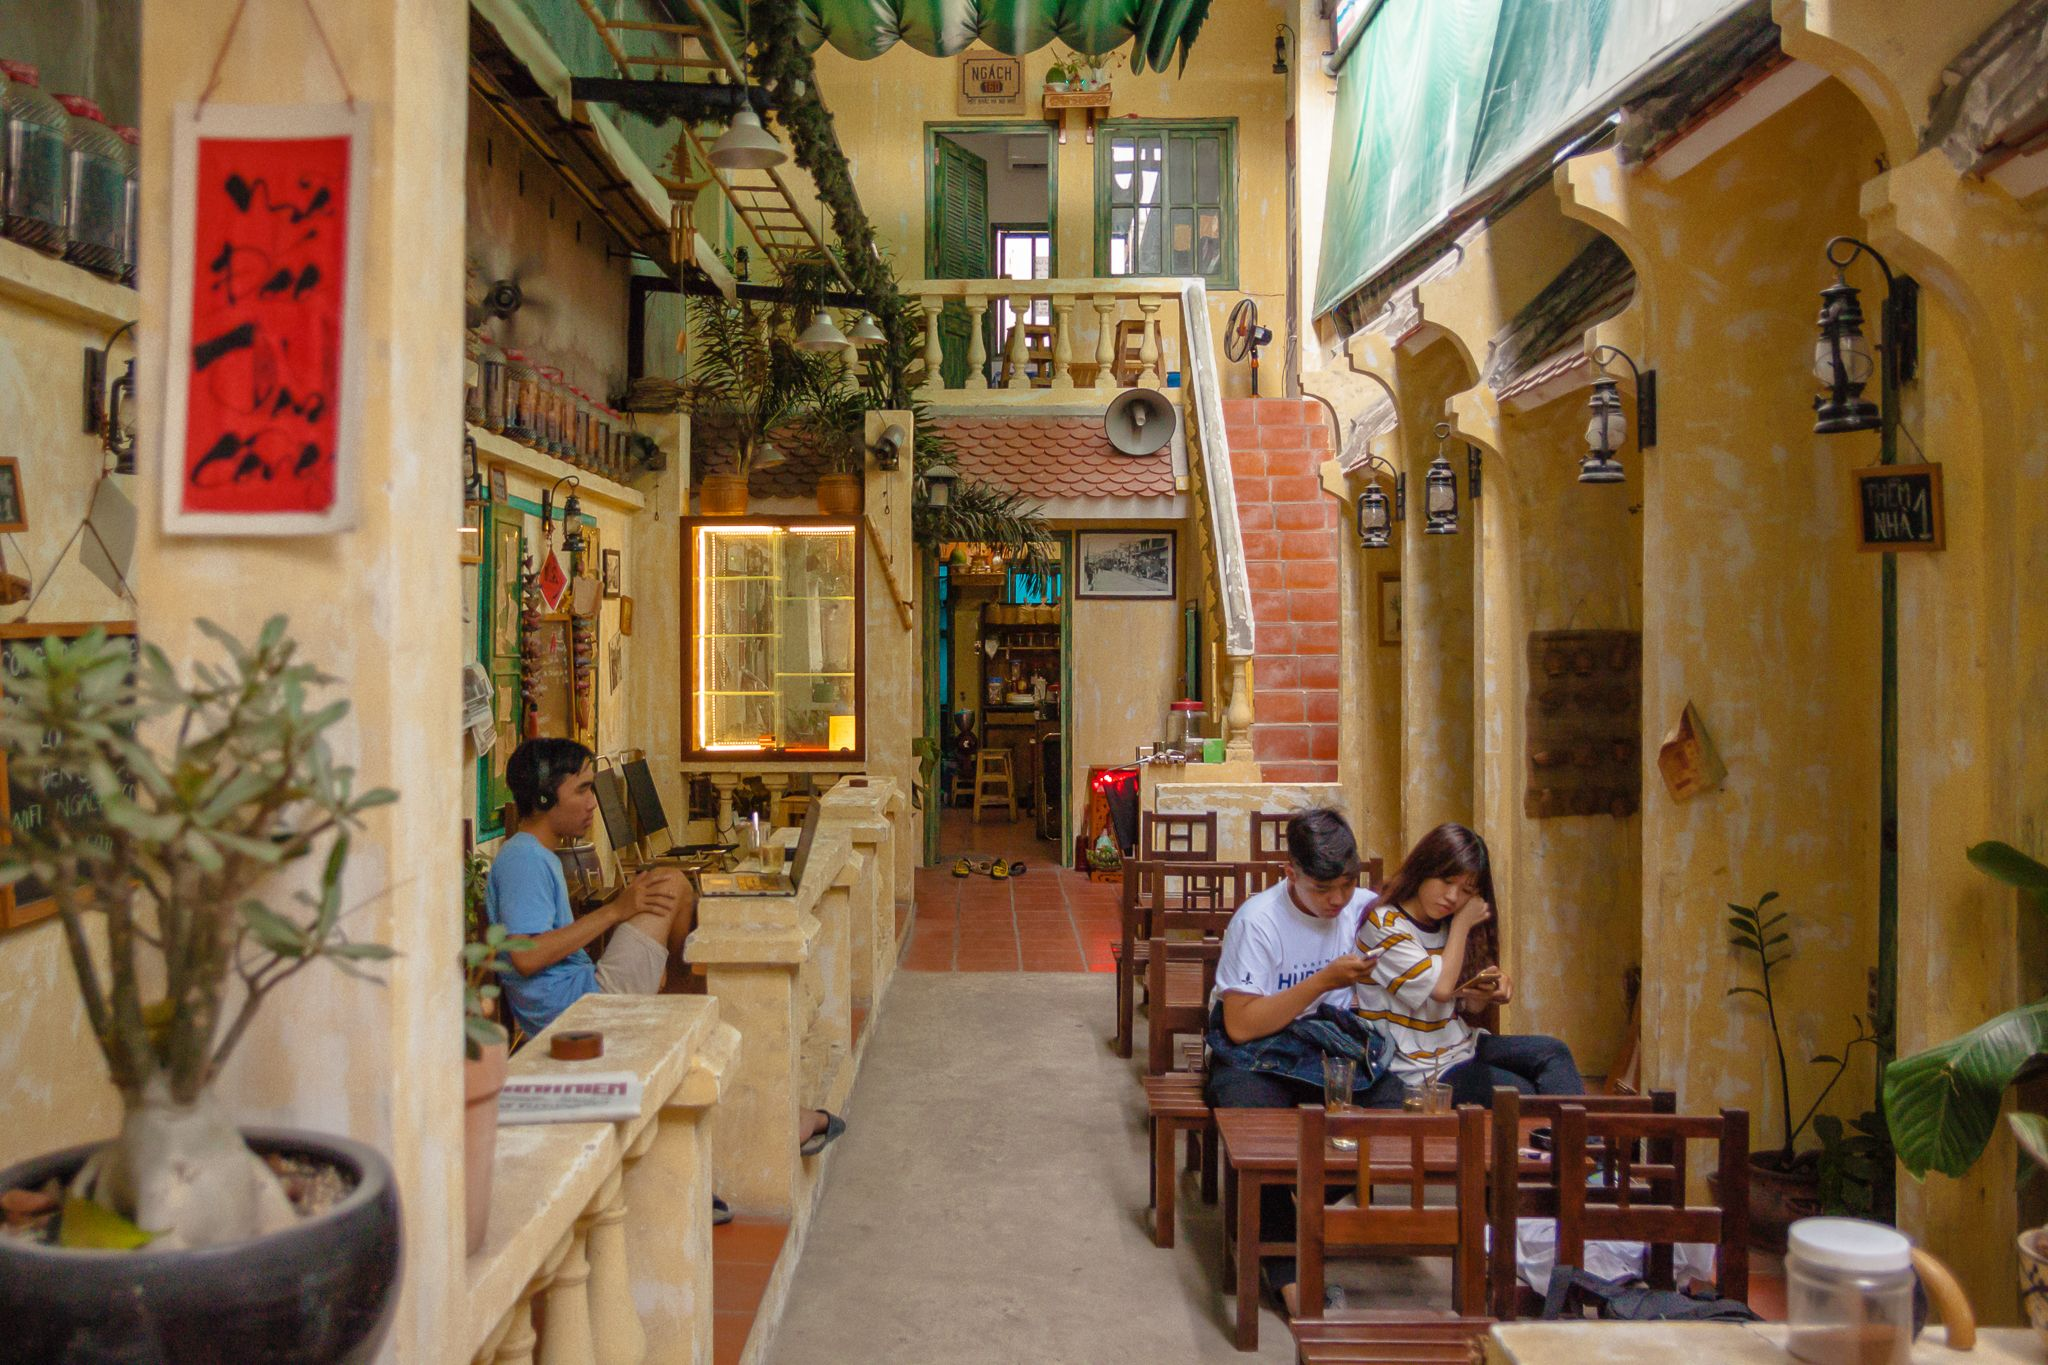 Hem Gems: When a Saigon Cafe Gets Its Hanoi Quirks Just Right